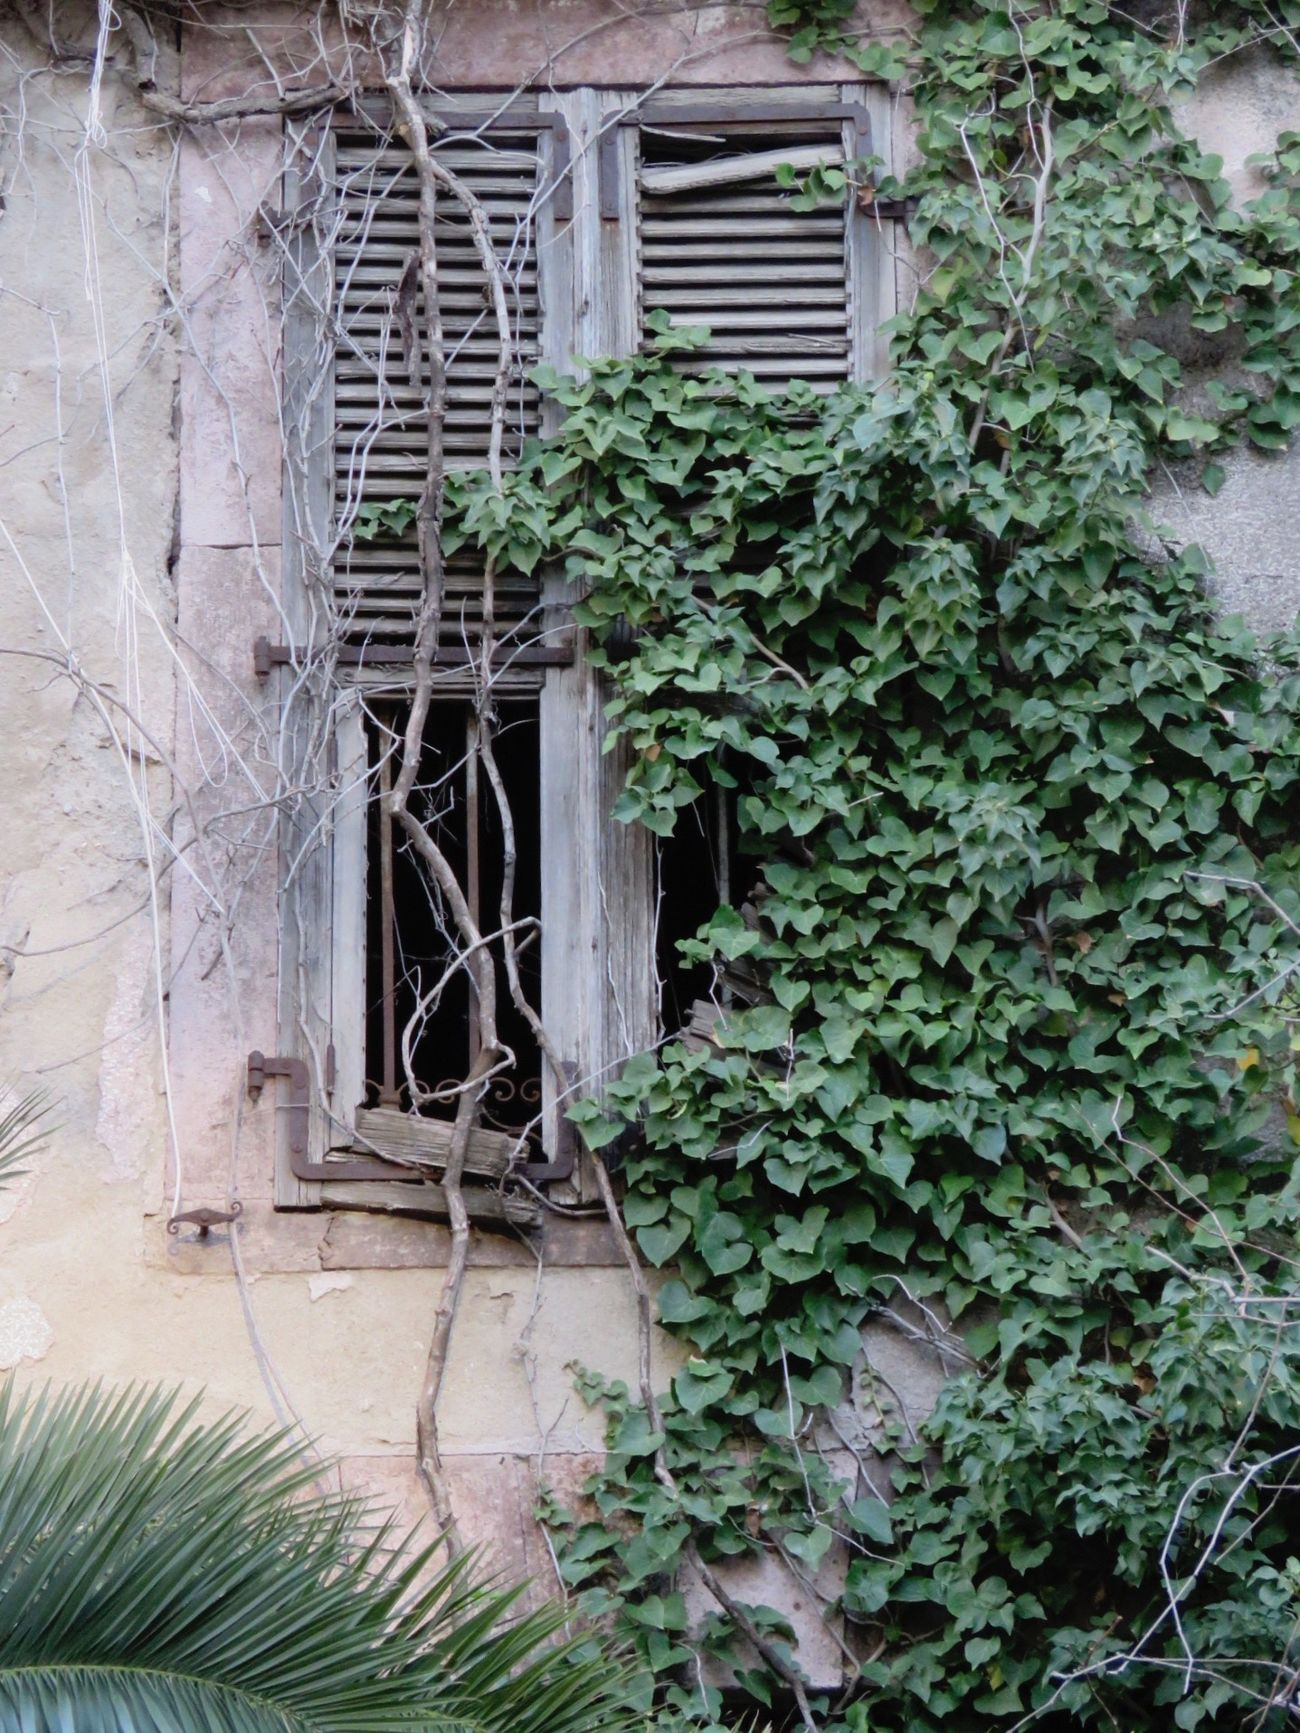 Ivy Wall IvyHouse Old Buildings Eski Pencere Sarmaşık Palmiye Duvar Ev EyeEm Gallery OpenEdit Winter Suny Day Taking Photos Check This Out EyeEm Nature Lover EyeEm Best Shots Urban Urban Geometry Window Ivy Leaves Palm Green Wall Ivy